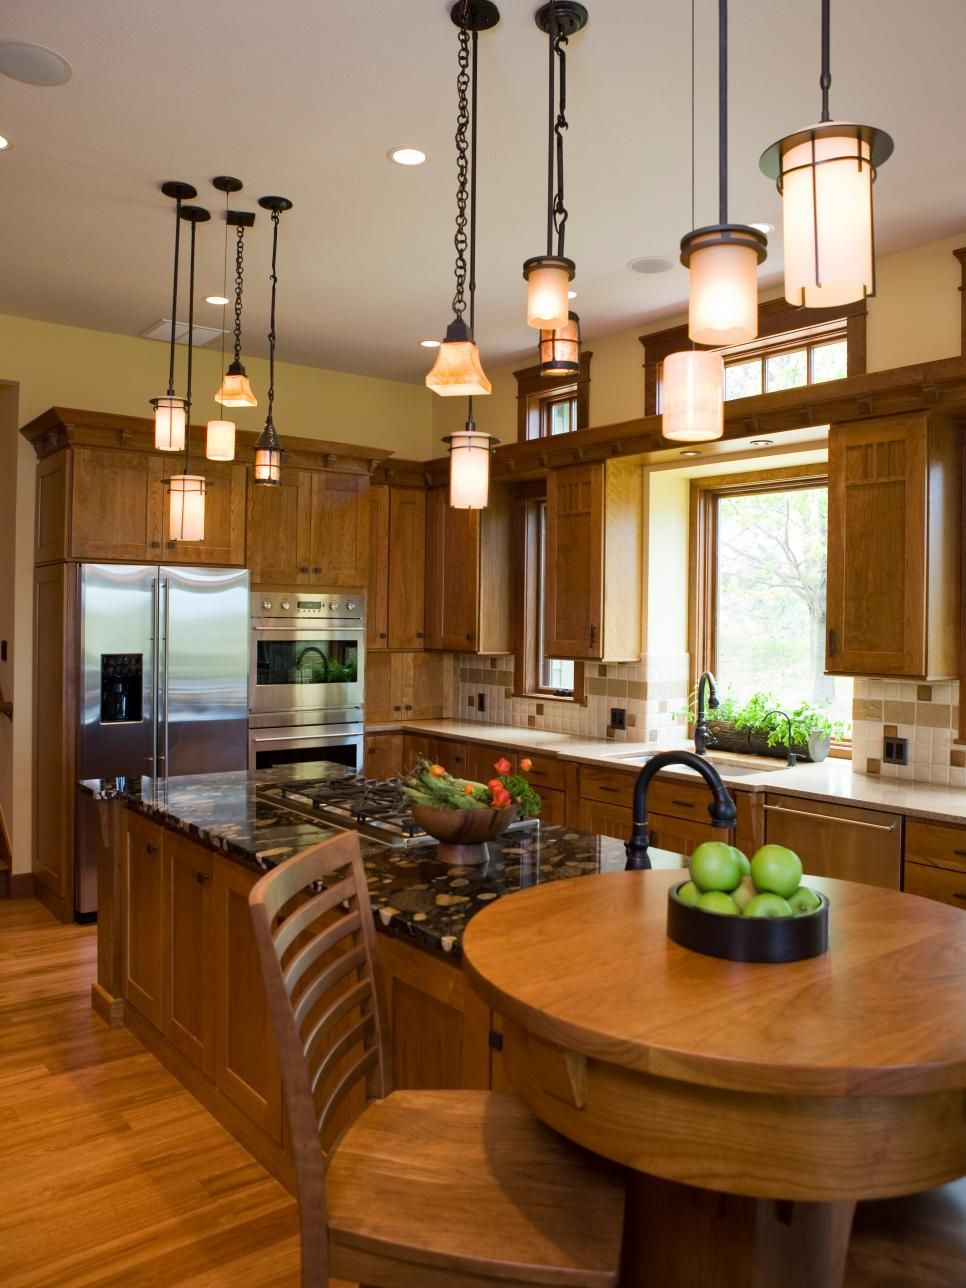 Unique Pendant Lighting Adds Warmth And Character To This